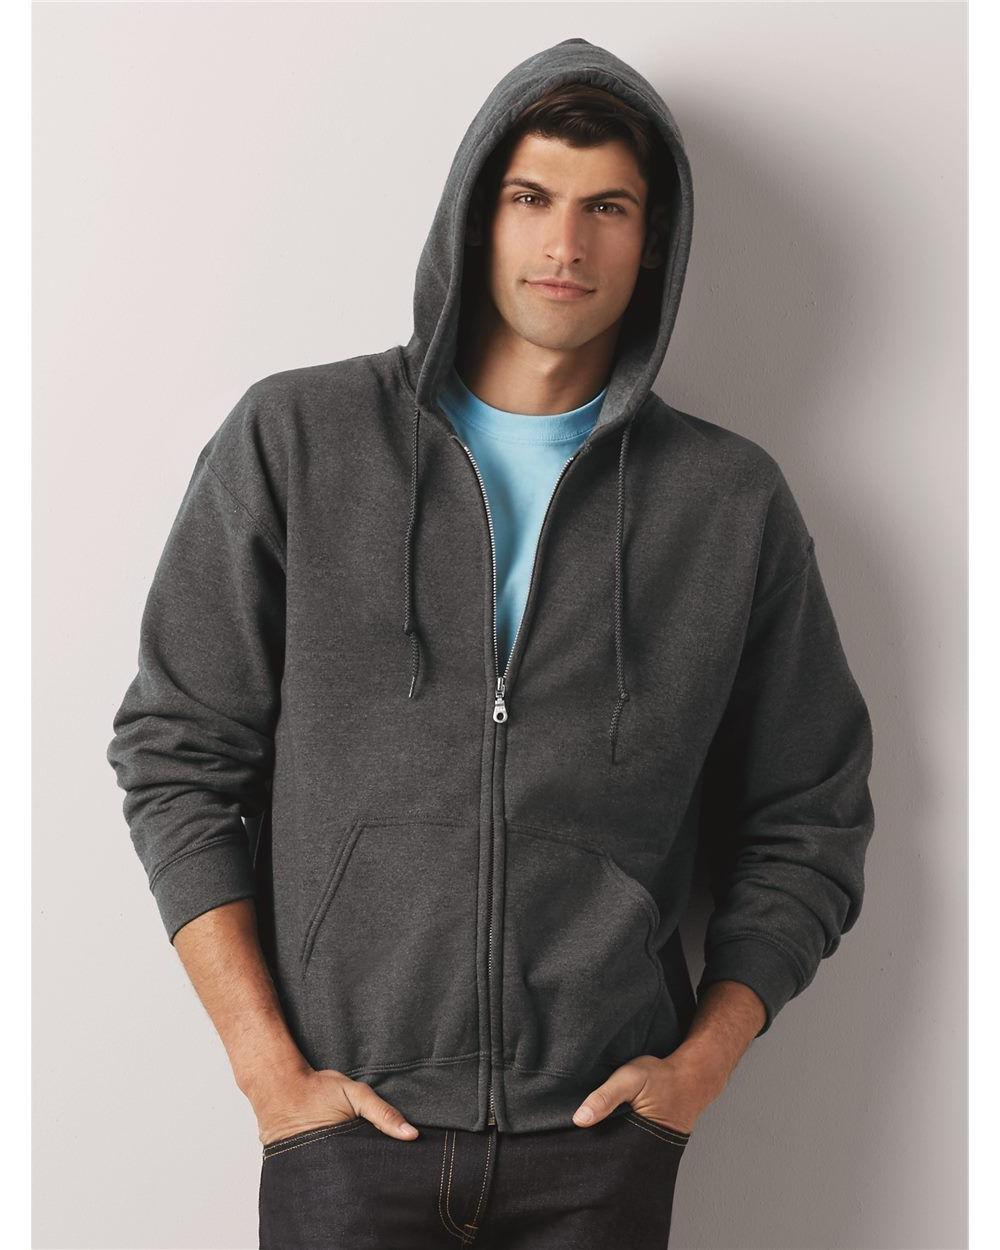 Gildan Zip Hoodie Heavy Blend Full Zip Hooded Sweatshirt Siz